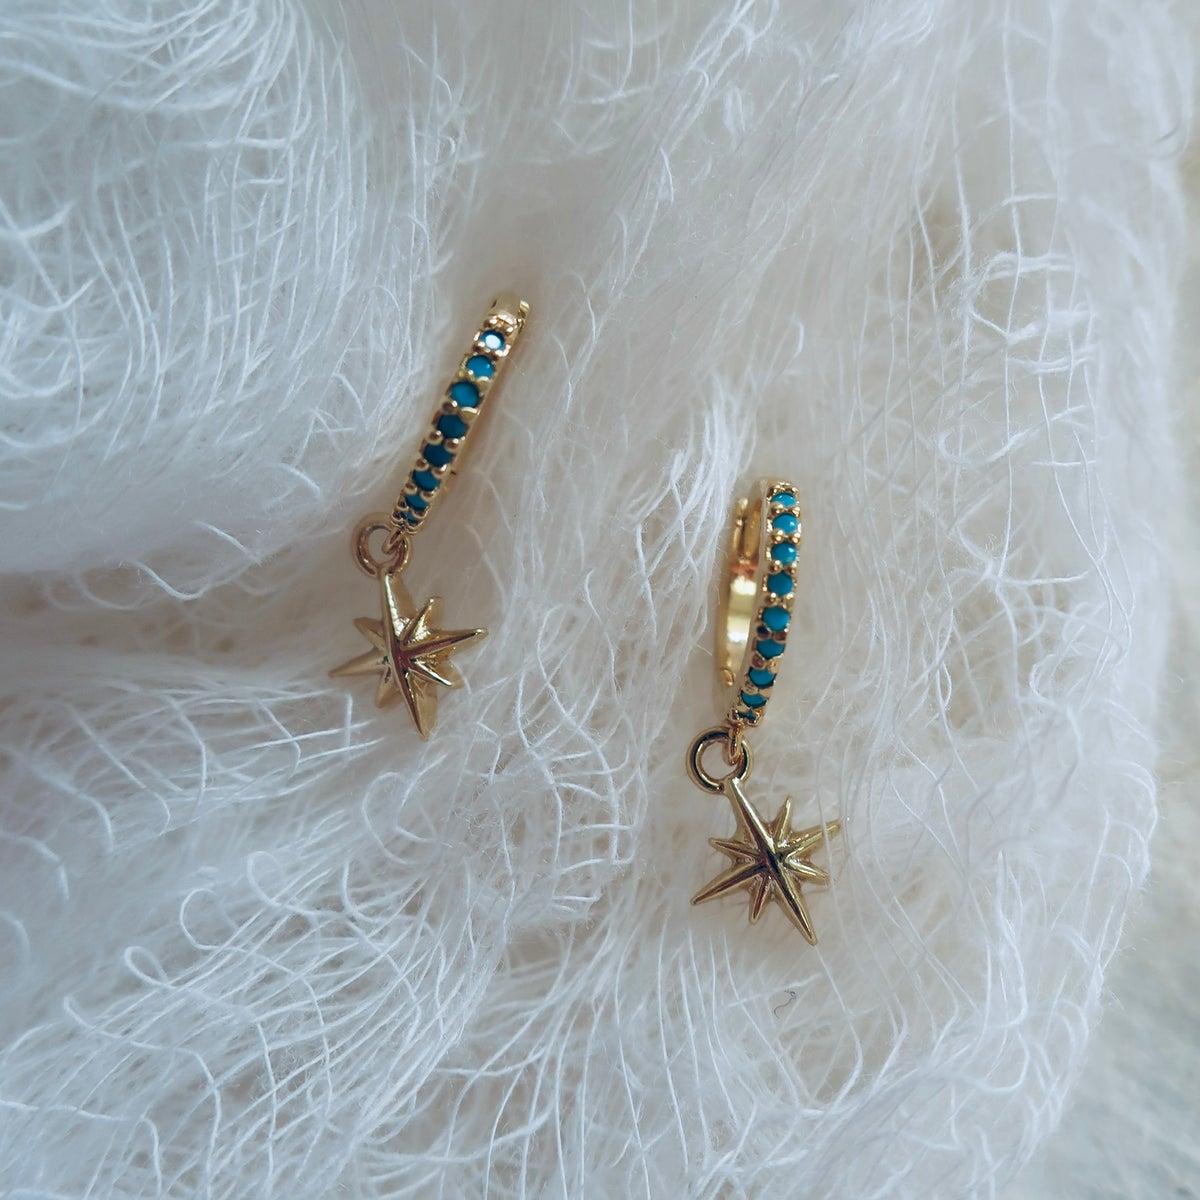 Image of Take on the Night earrings in Turquoise